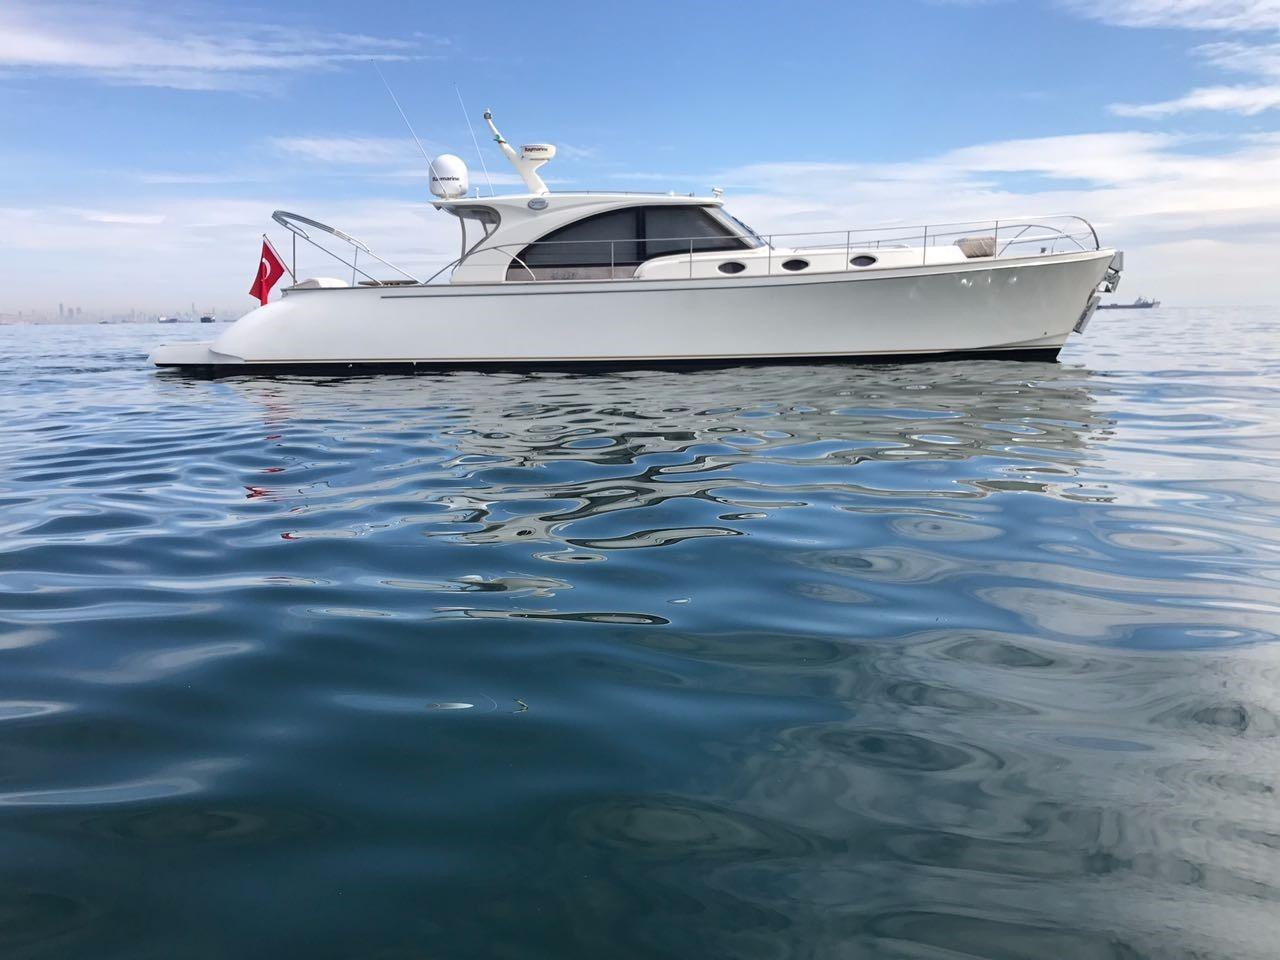 2009 Franchini Emotion 55 Classic Power Boat For Sale - www.yachtworld.com